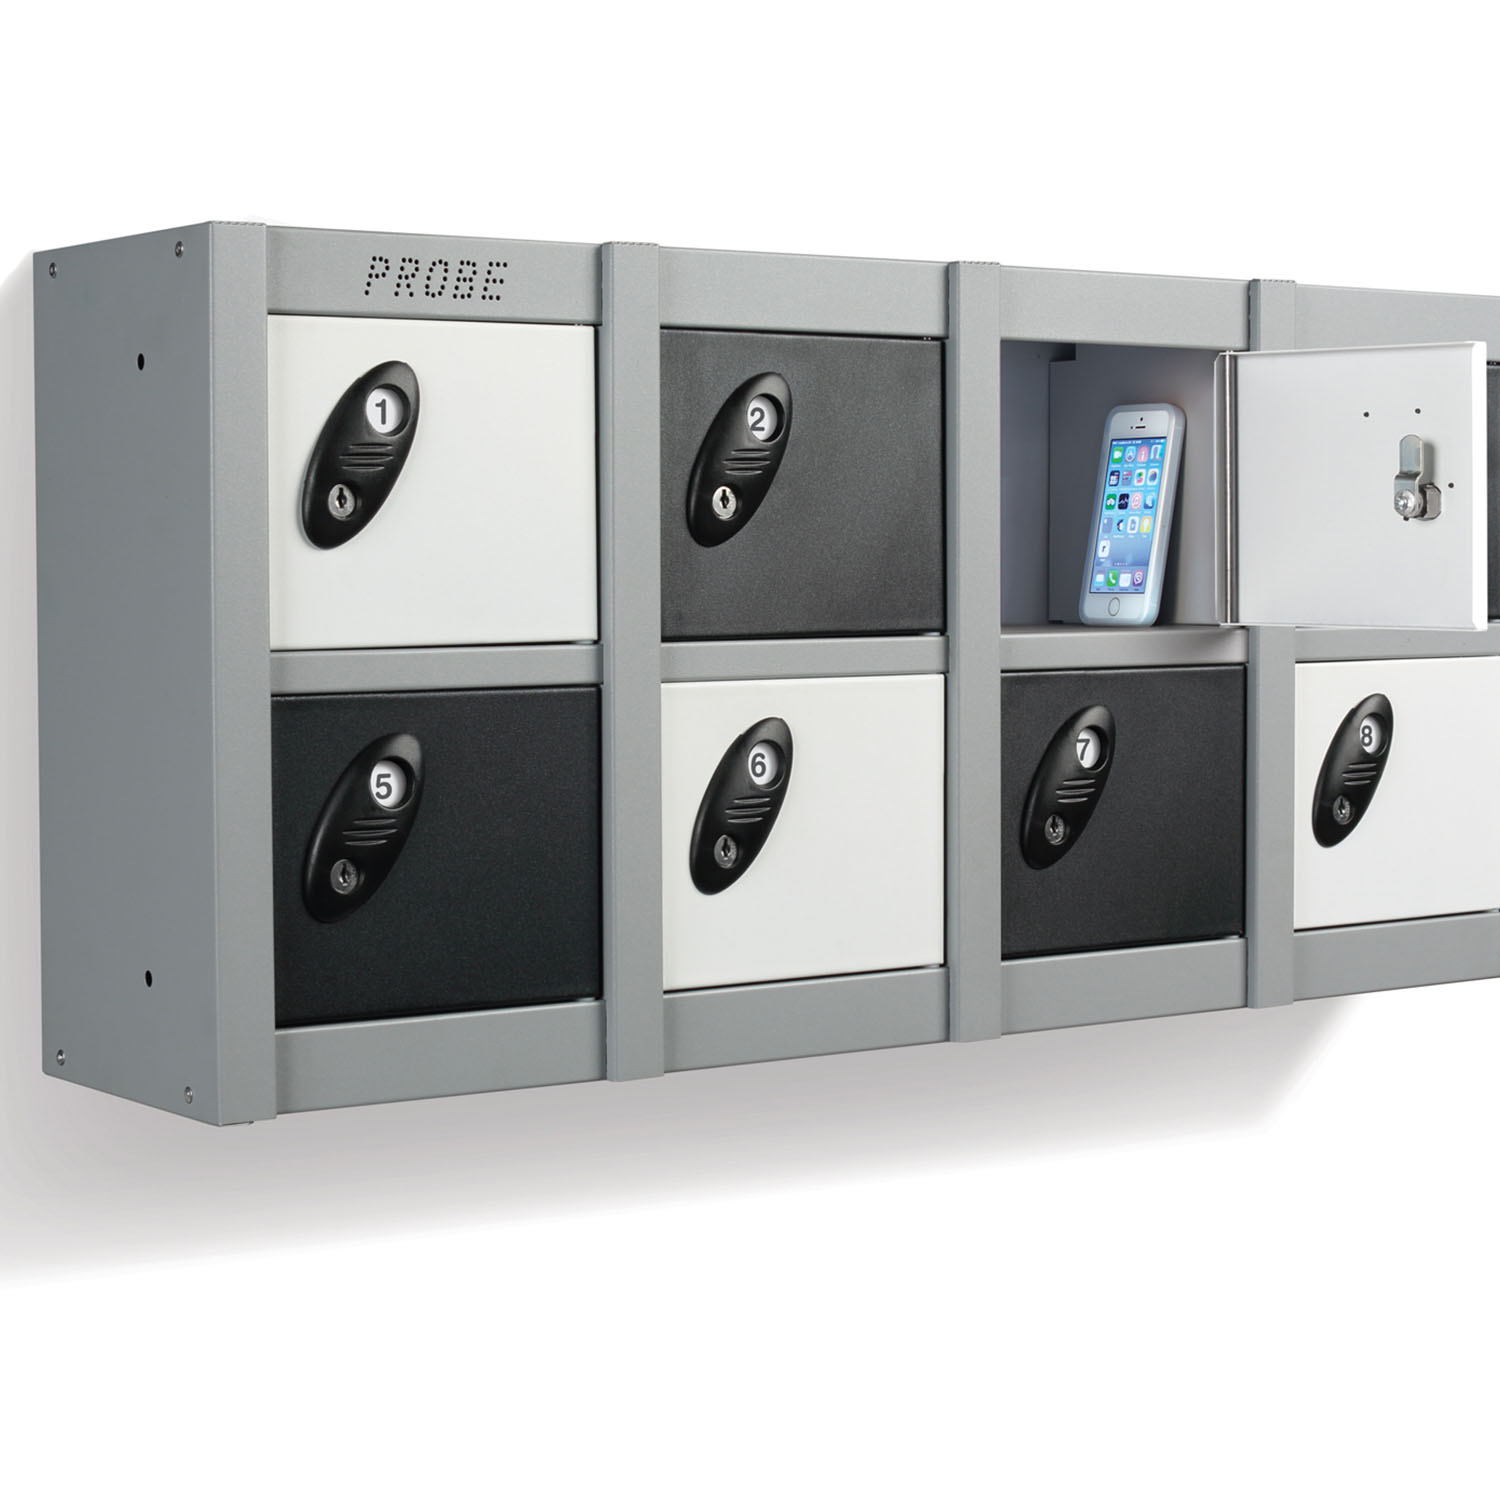 Probe 8 doors minibox wall mounted lockers